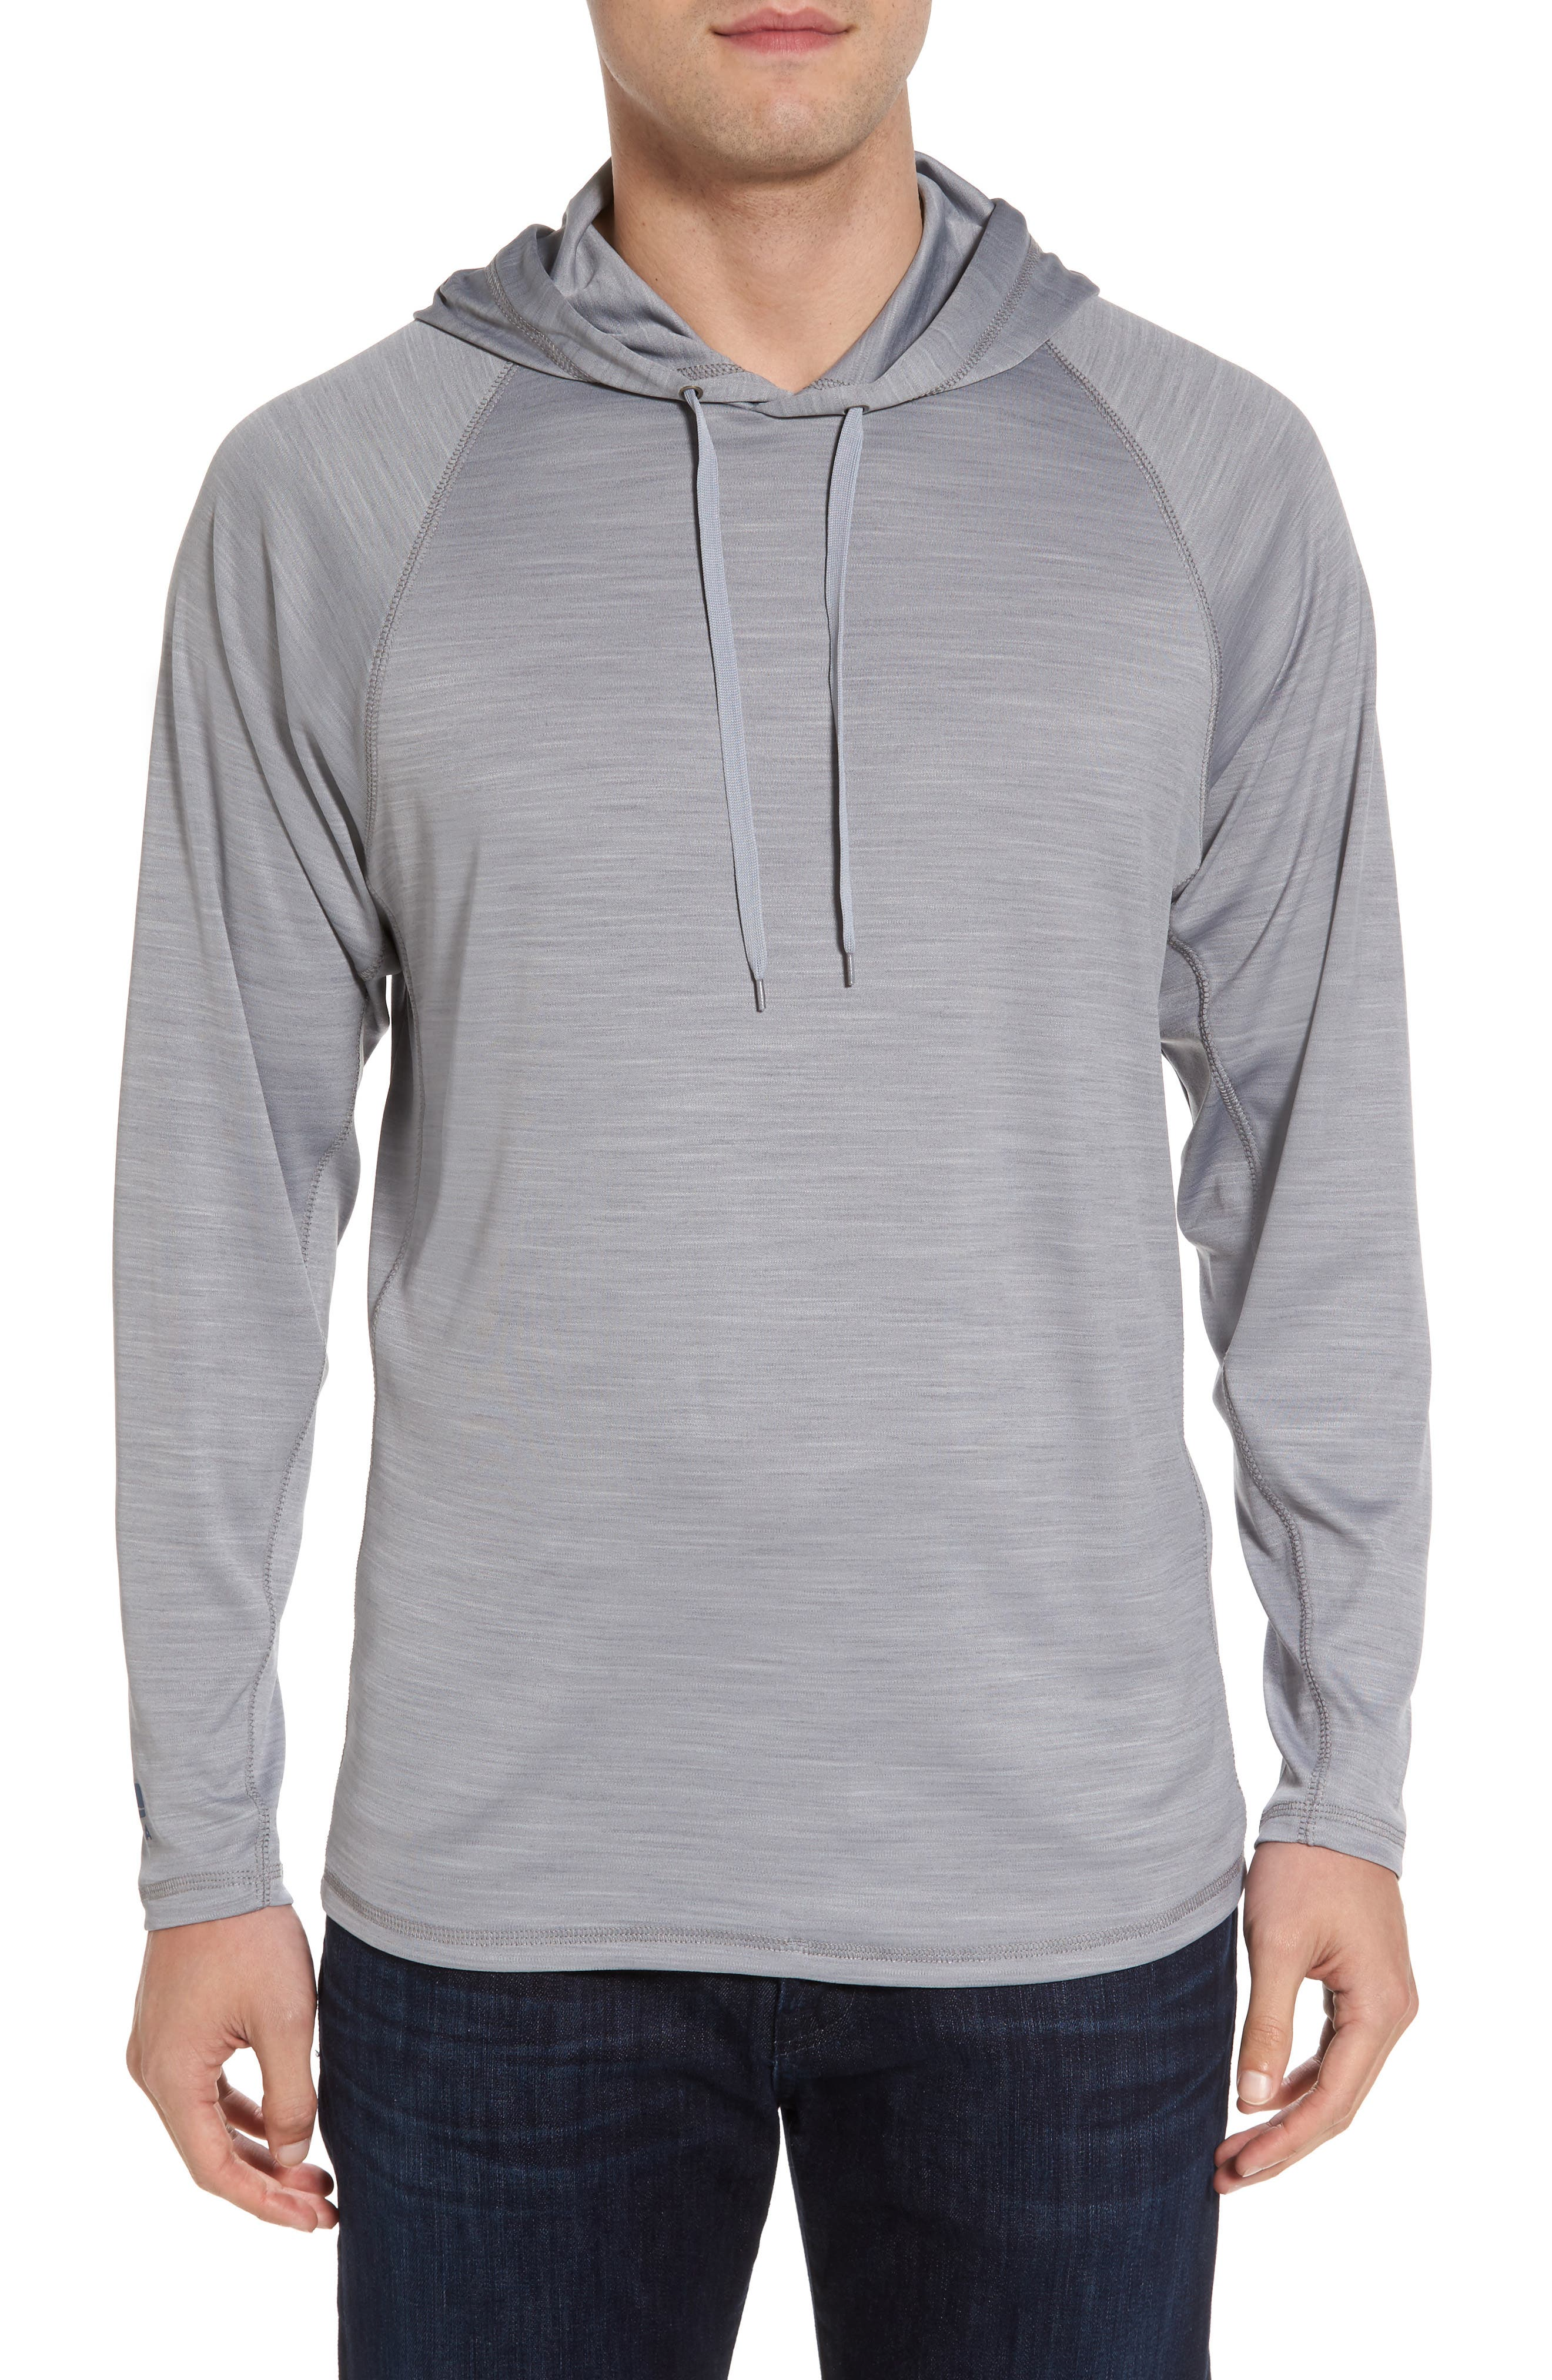 Main Image - Cova Undercover Hooded Long Sleeve Performance T-Shirt